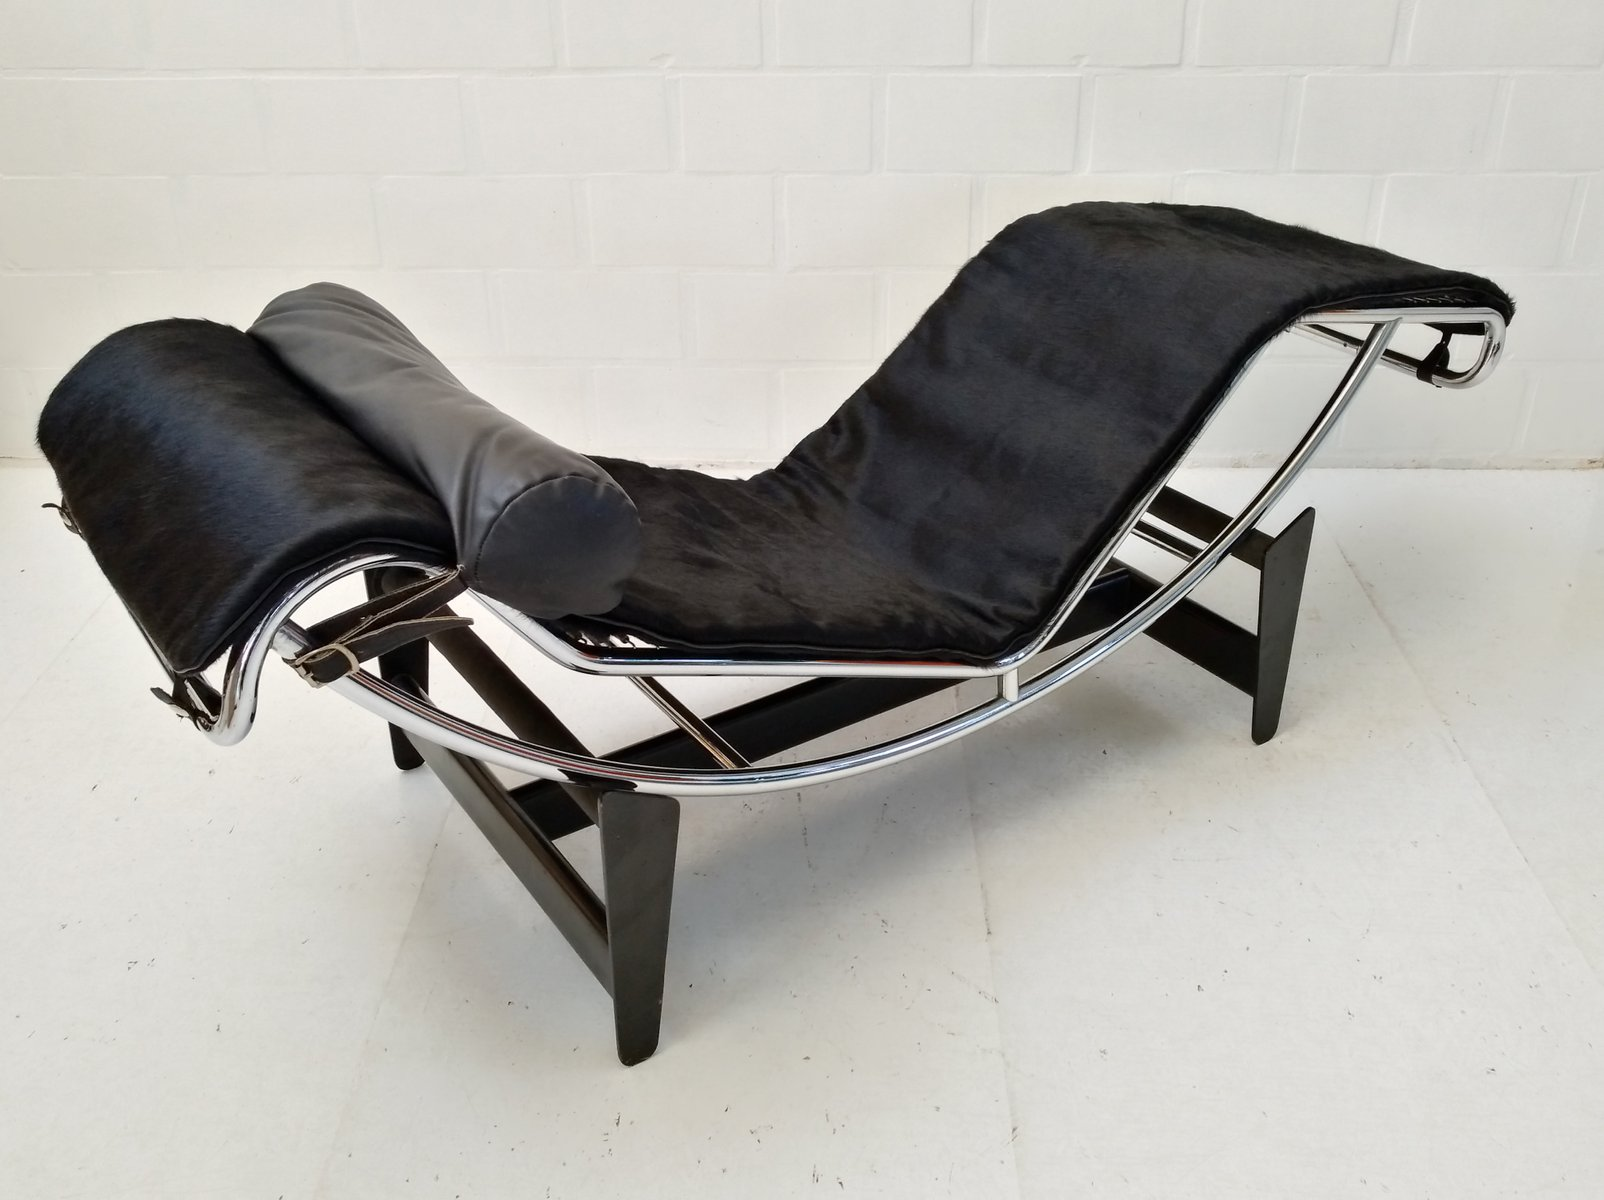 Early lc4 chaise longue by le corbusier perriand for Chaise longue lc4